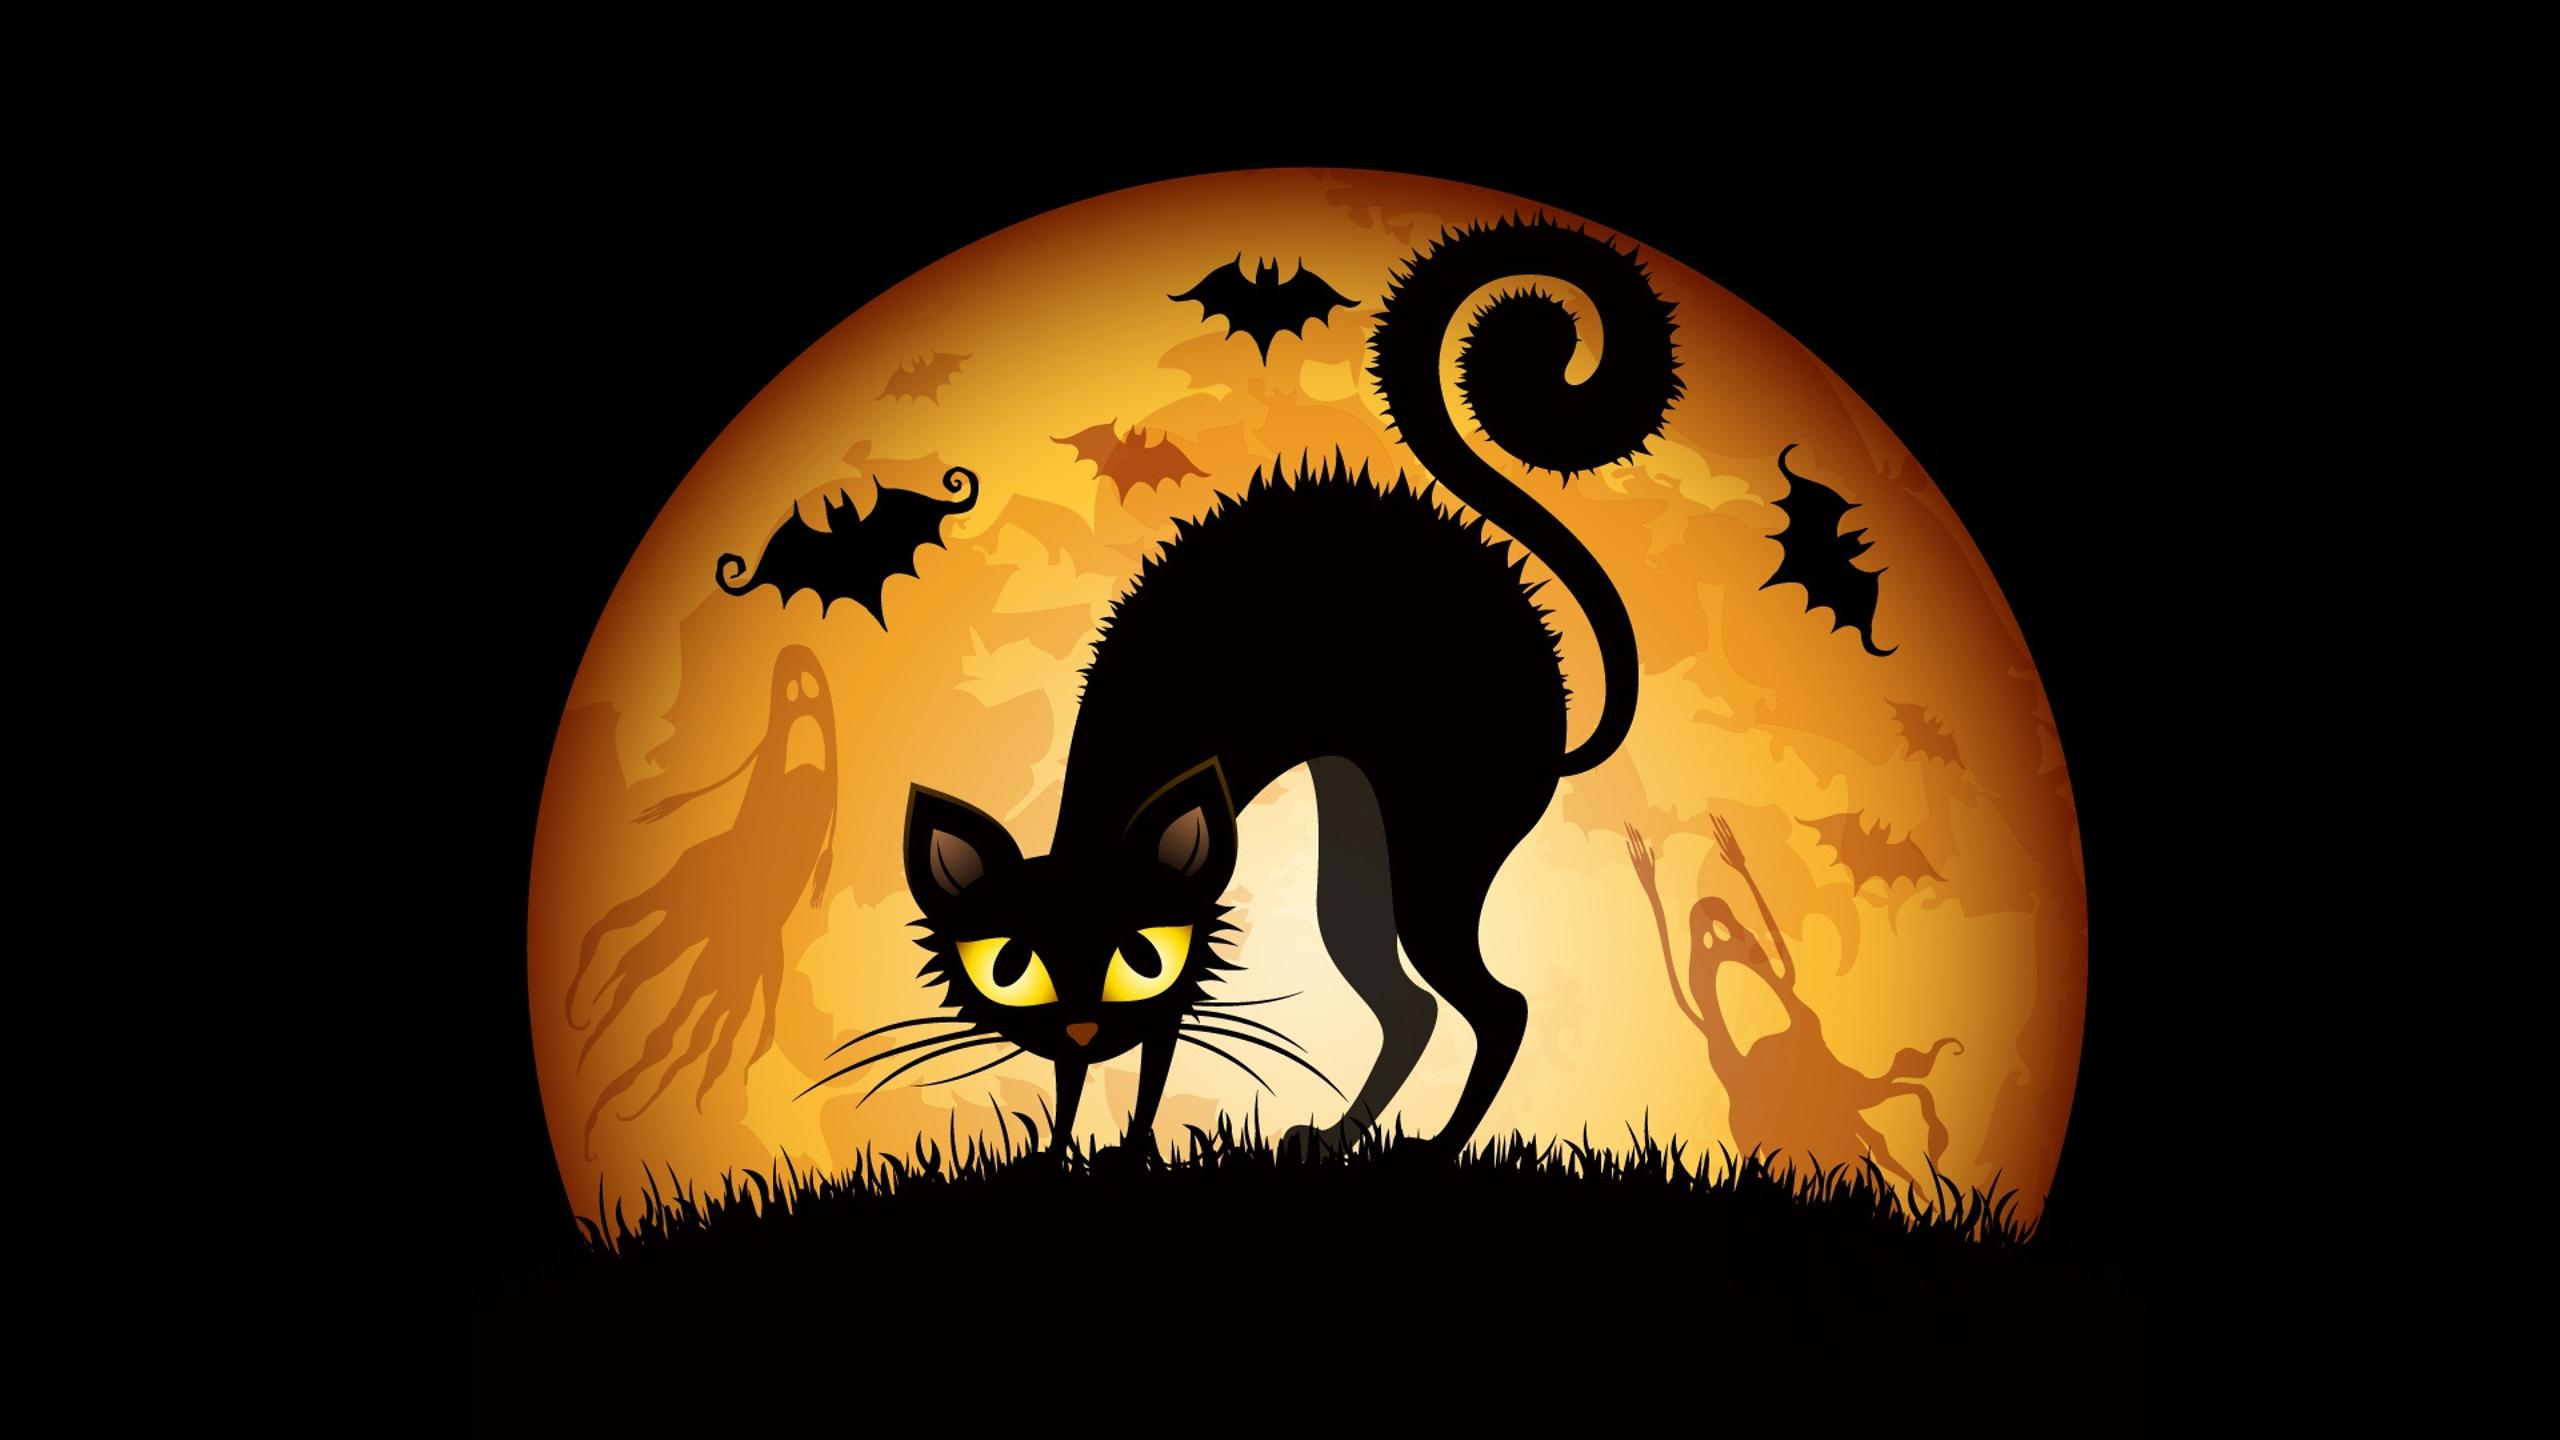 Best Wallpaper Night Cat - black-scary-cat-in-the-night-of-halloween-2560x1440  Picture.jpg